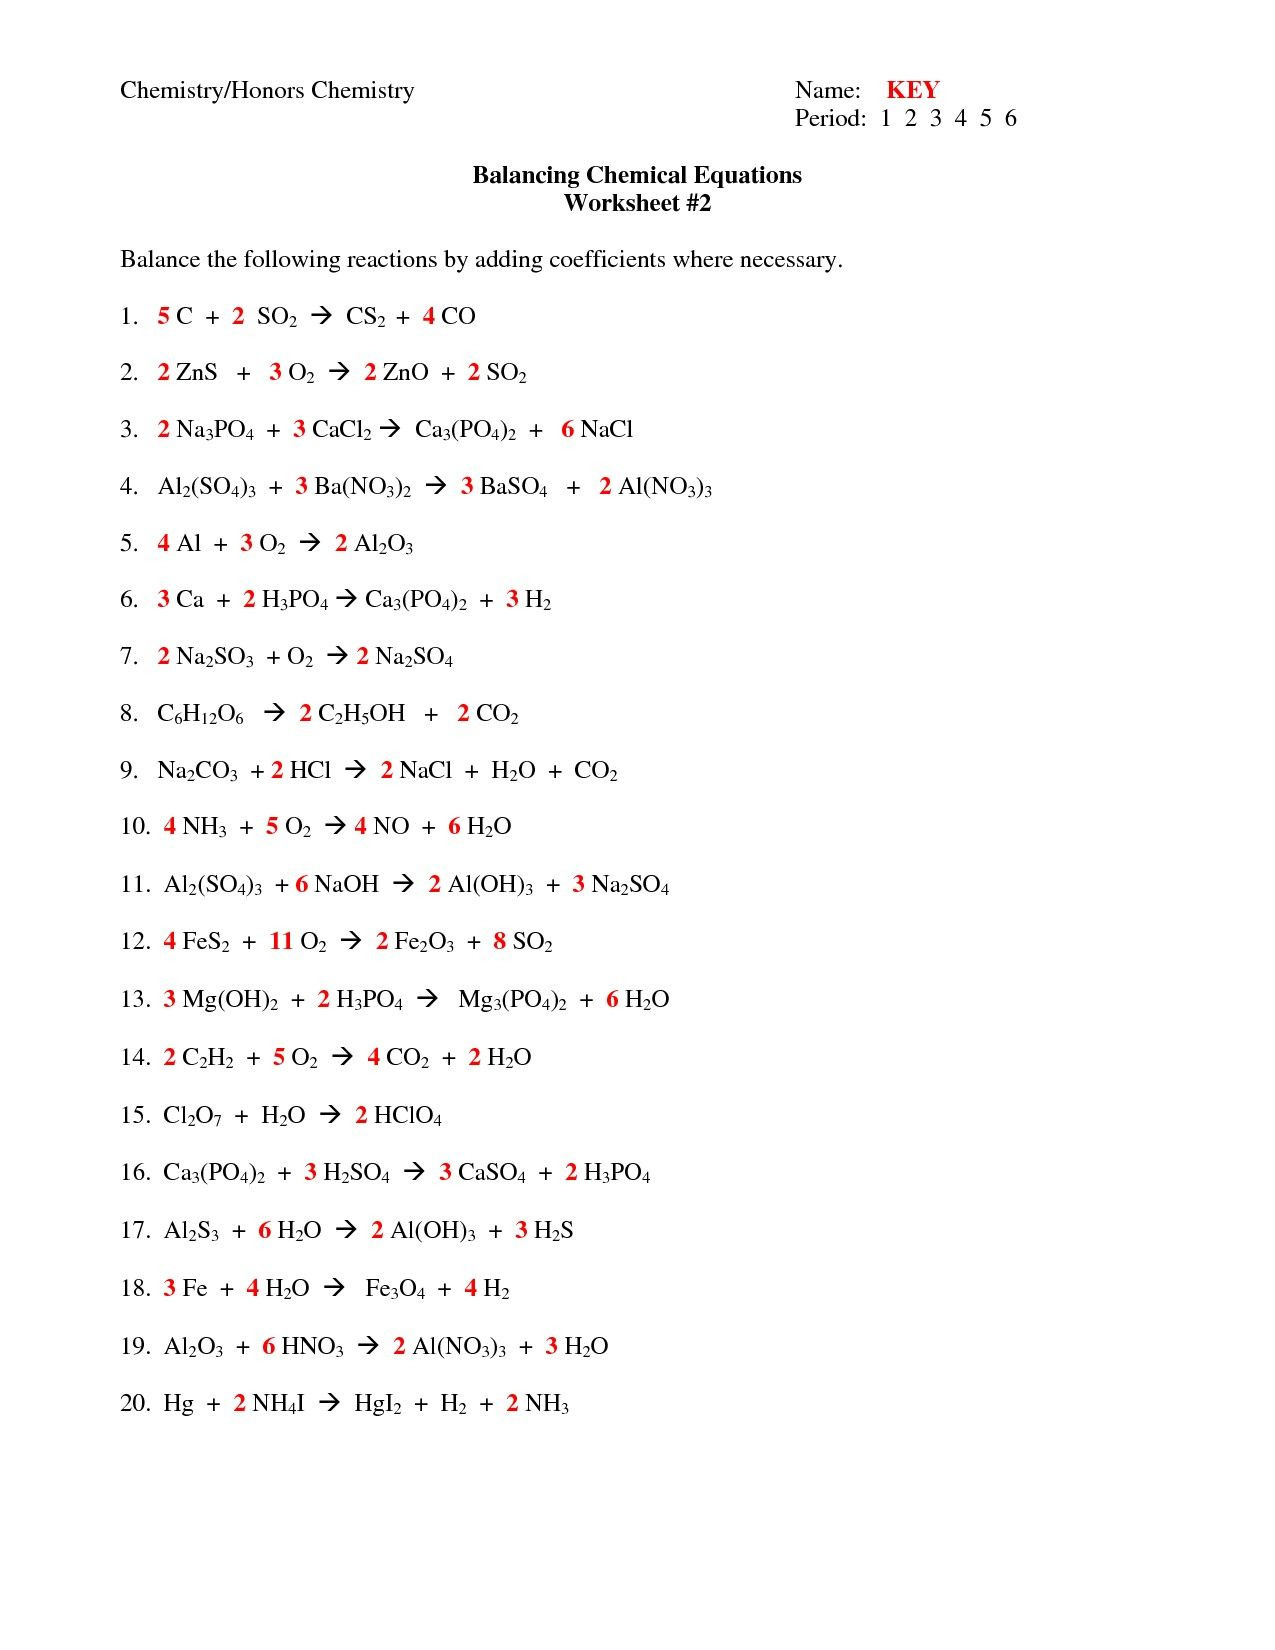 33 Clever Balancing Chemical Equations Worksheet Design With